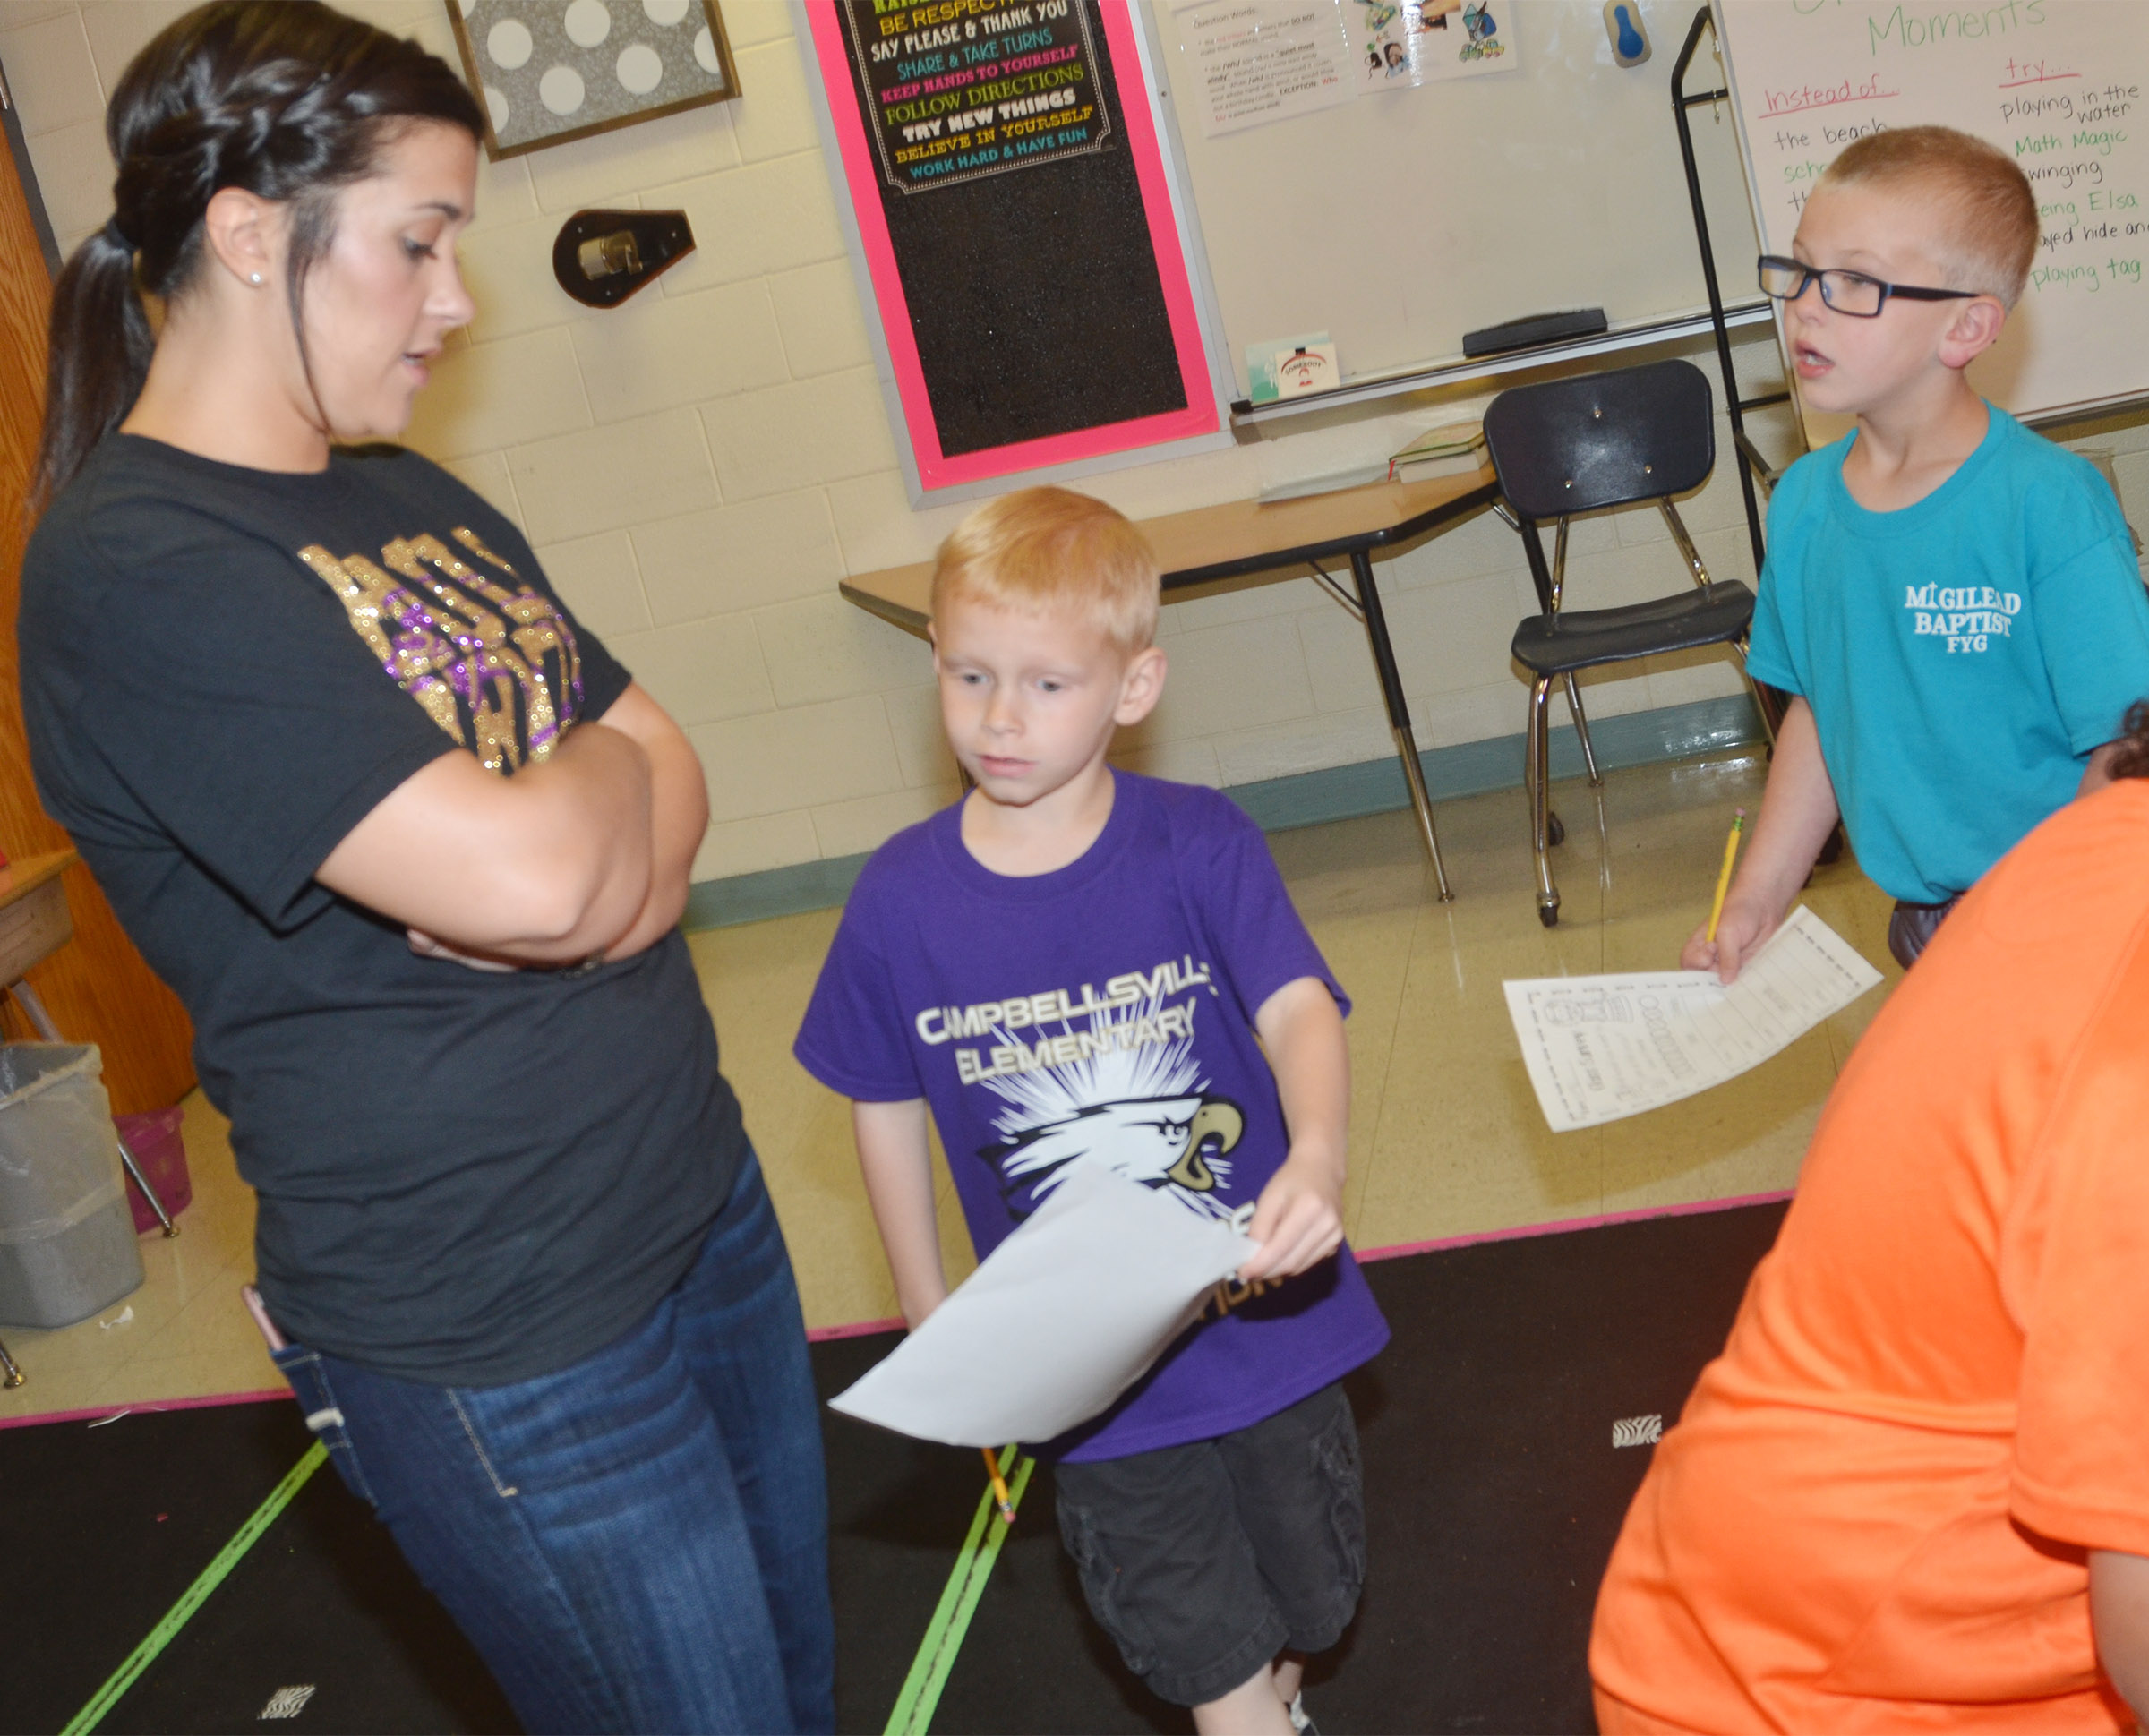 CES first-graders Chase Gabbert, center, and Ethan Bailey survey teacher Hailey Ogle.